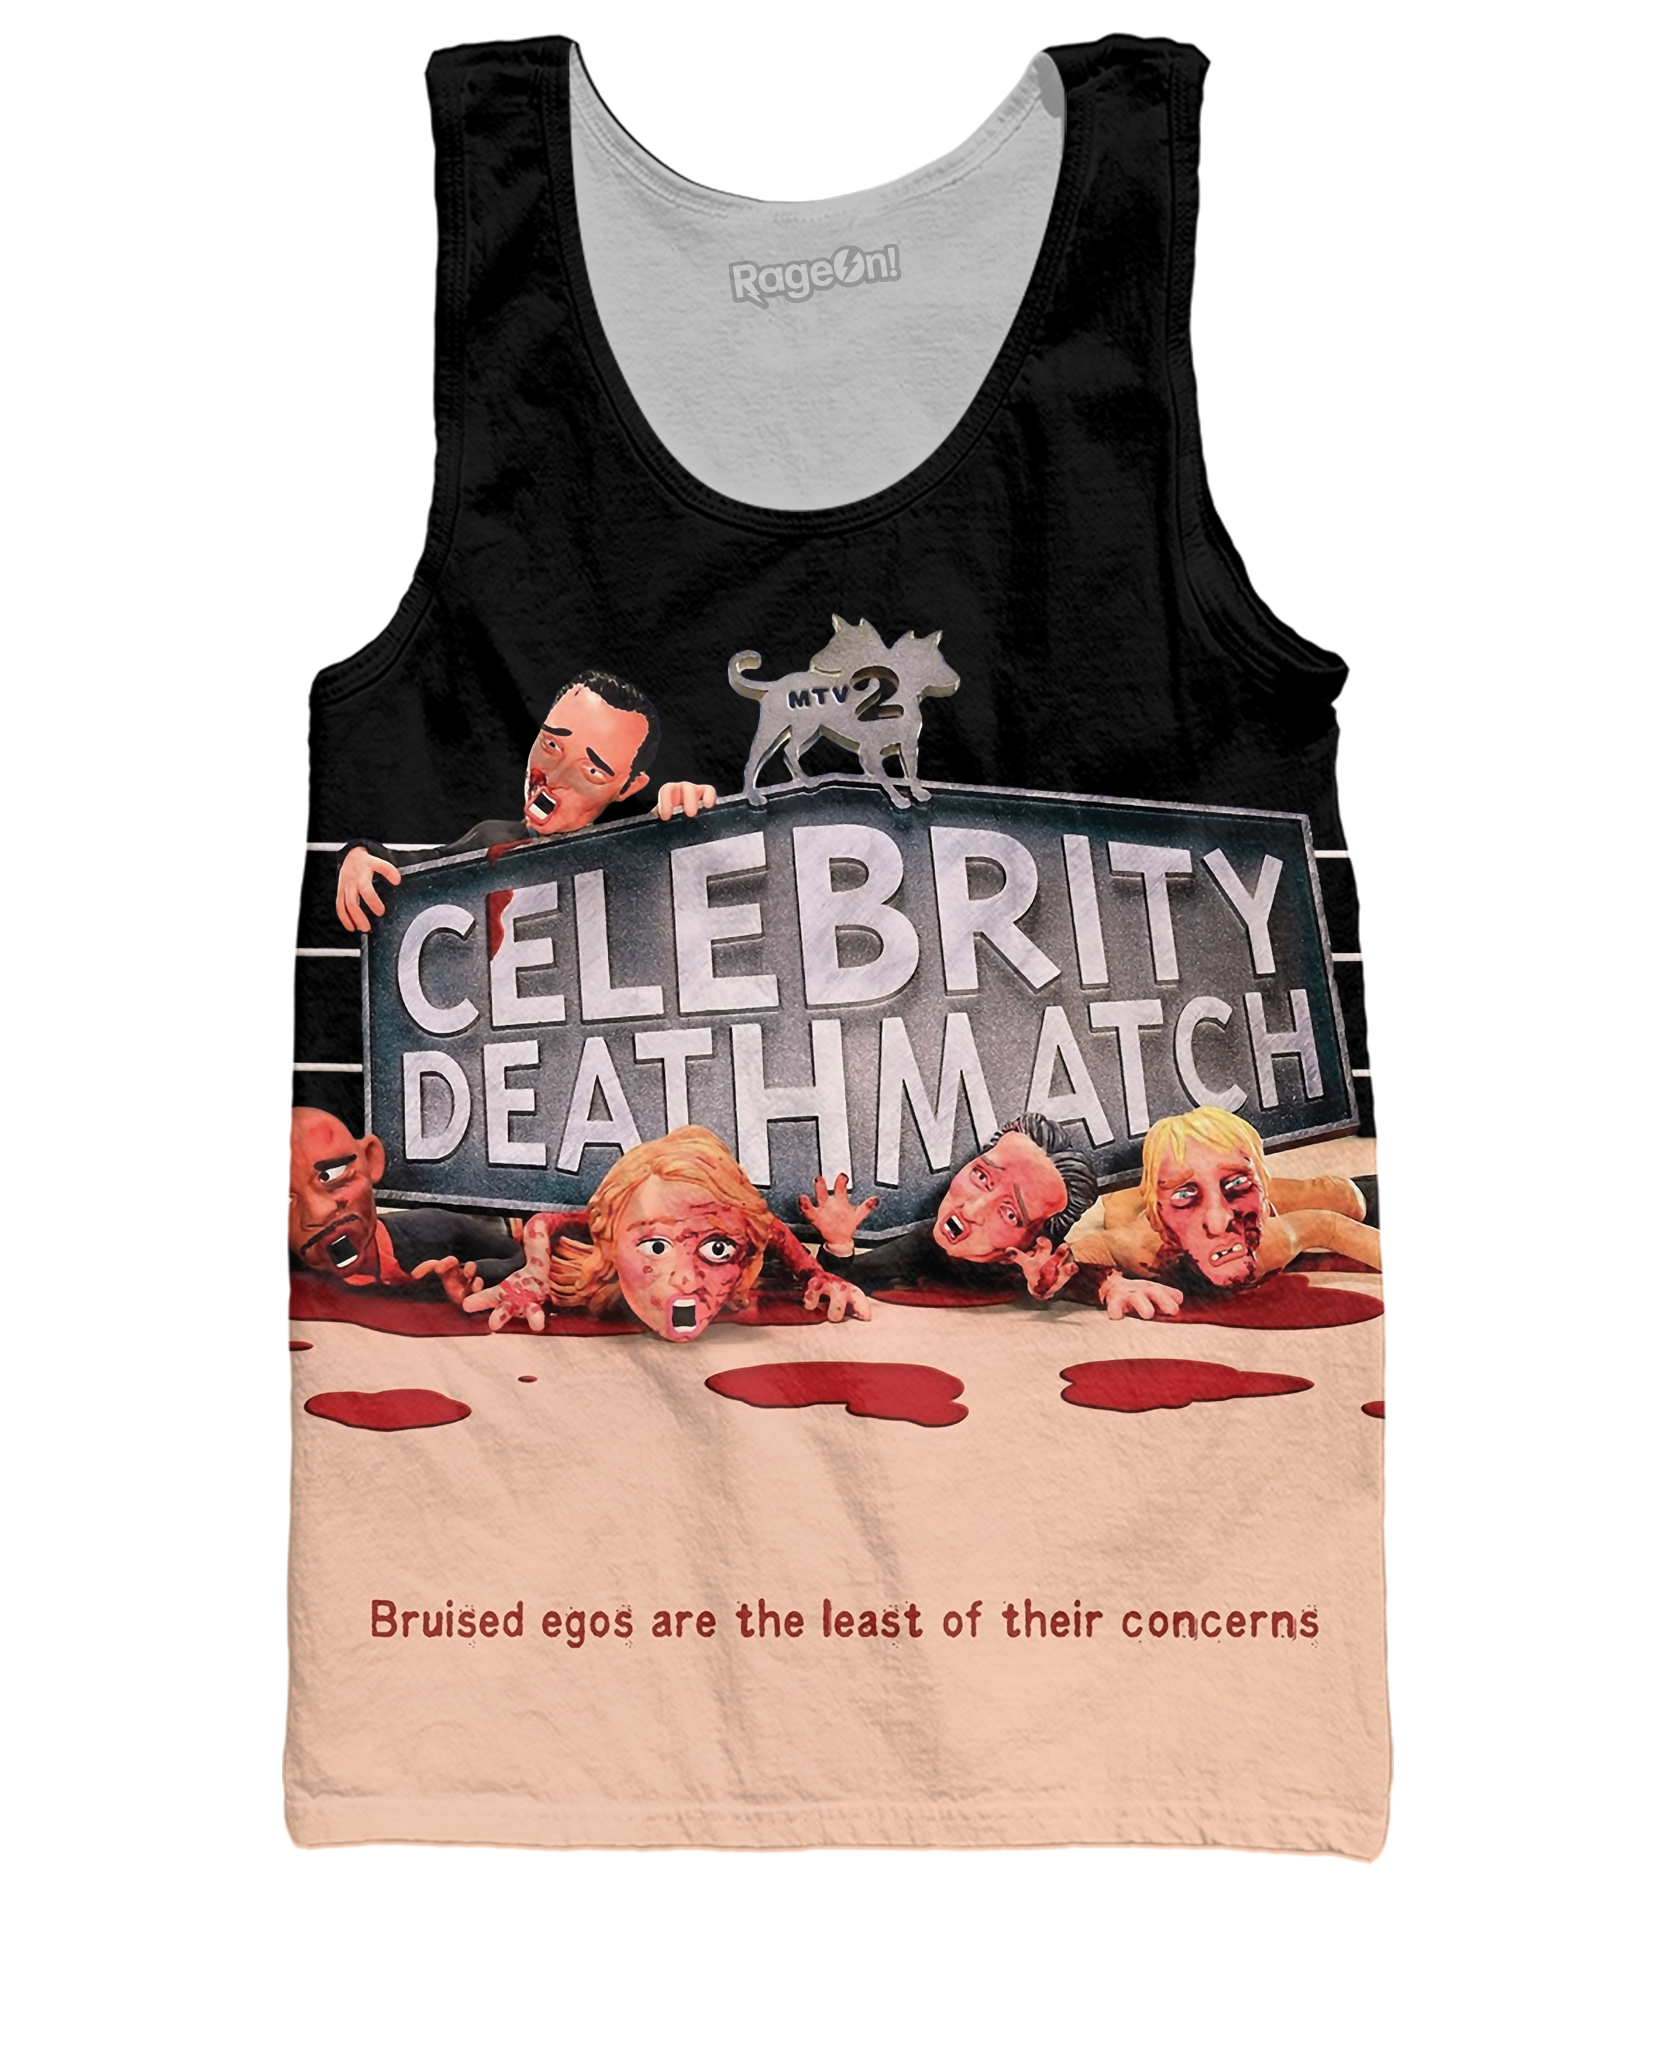 MTV2's Celebrity Deathmatch Tank Top